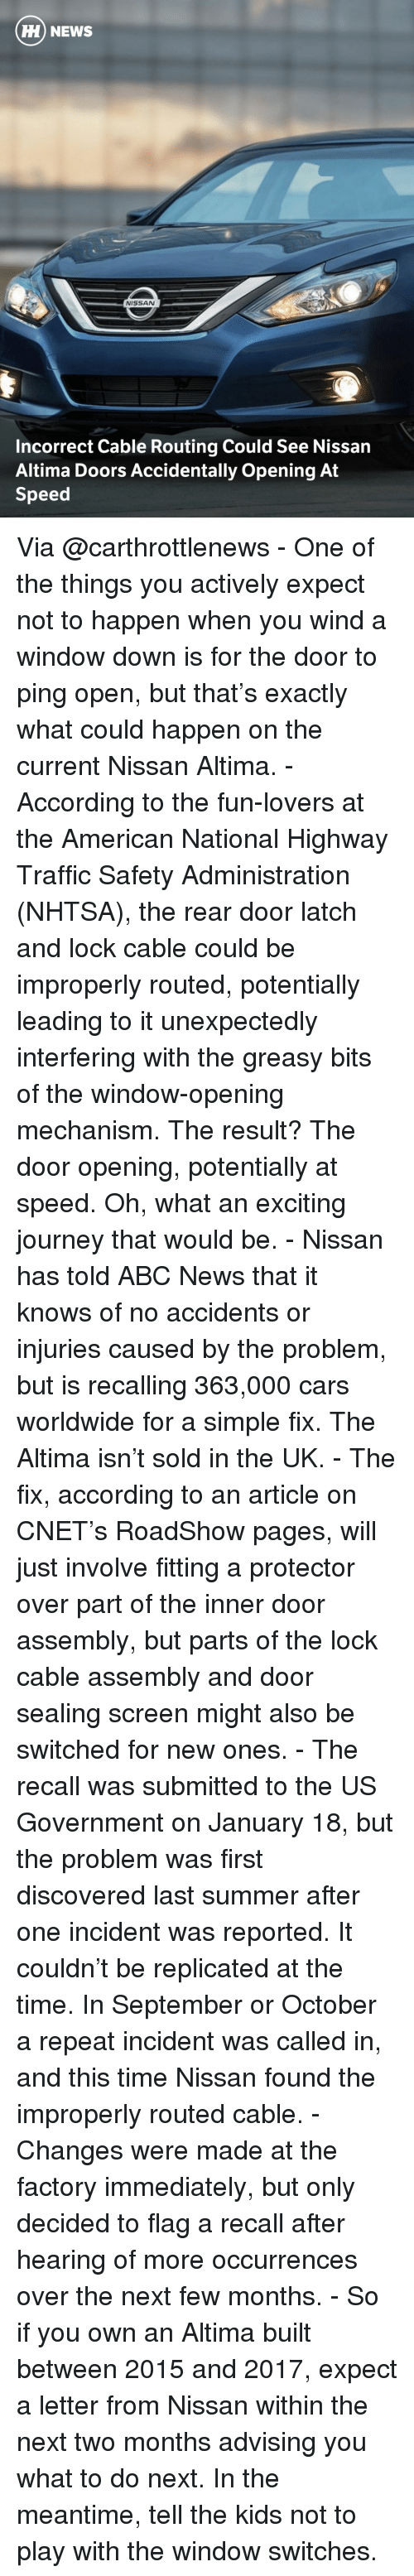 Unexpectable: HH NEWS  NISSAN  Incorrect Cable Routing Could See Nissan  Altima Doors Accidentally opening At  Speed Via @carthrottlenews - One of the things you actively expect not to happen when you wind a window down is for the door to ping open, but that's exactly what could happen on the current Nissan Altima. - According to the fun-lovers at the American National Highway Traffic Safety Administration (NHTSA), the rear door latch and lock cable could be improperly routed, potentially leading to it unexpectedly interfering with the greasy bits of the window-opening mechanism. The result? The door opening, potentially at speed. Oh, what an exciting journey that would be. - Nissan has told ABC News that it knows of no accidents or injuries caused by the problem, but is recalling 363,000 cars worldwide for a simple fix. The Altima isn't sold in the UK. - The fix, according to an article on CNET's RoadShow pages, will just involve fitting a protector over part of the inner door assembly, but parts of the lock cable assembly and door sealing screen might also be switched for new ones. - The recall was submitted to the US Government on January 18, but the problem was first discovered last summer after one incident was reported. It couldn't be replicated at the time. In September or October a repeat incident was called in, and this time Nissan found the improperly routed cable. - Changes were made at the factory immediately, but only decided to flag a recall after hearing of more occurrences over the next few months. - So if you own an Altima built between 2015 and 2017, expect a letter from Nissan within the next two months advising you what to do next. In the meantime, tell the kids not to play with the window switches.